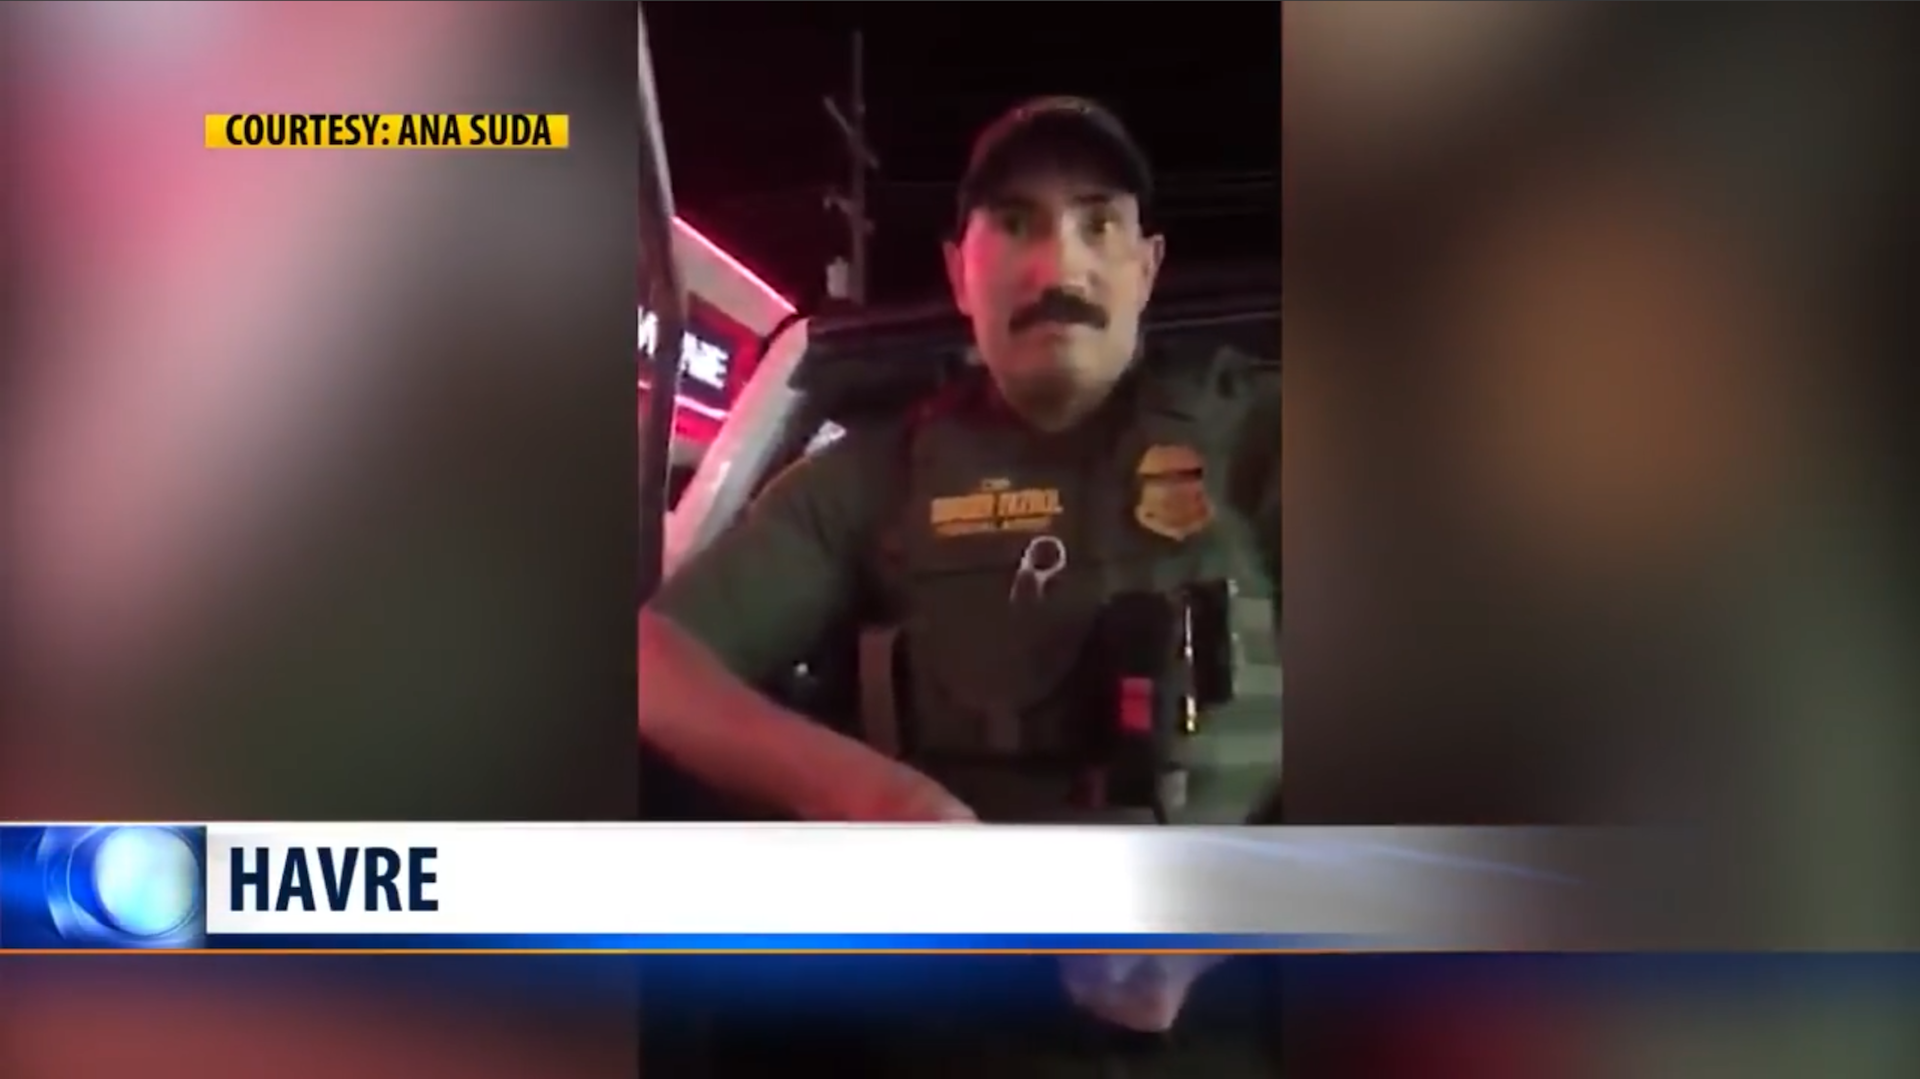 Two Americans were detained by a Border Patrol agent after he heard them speaking Spanish